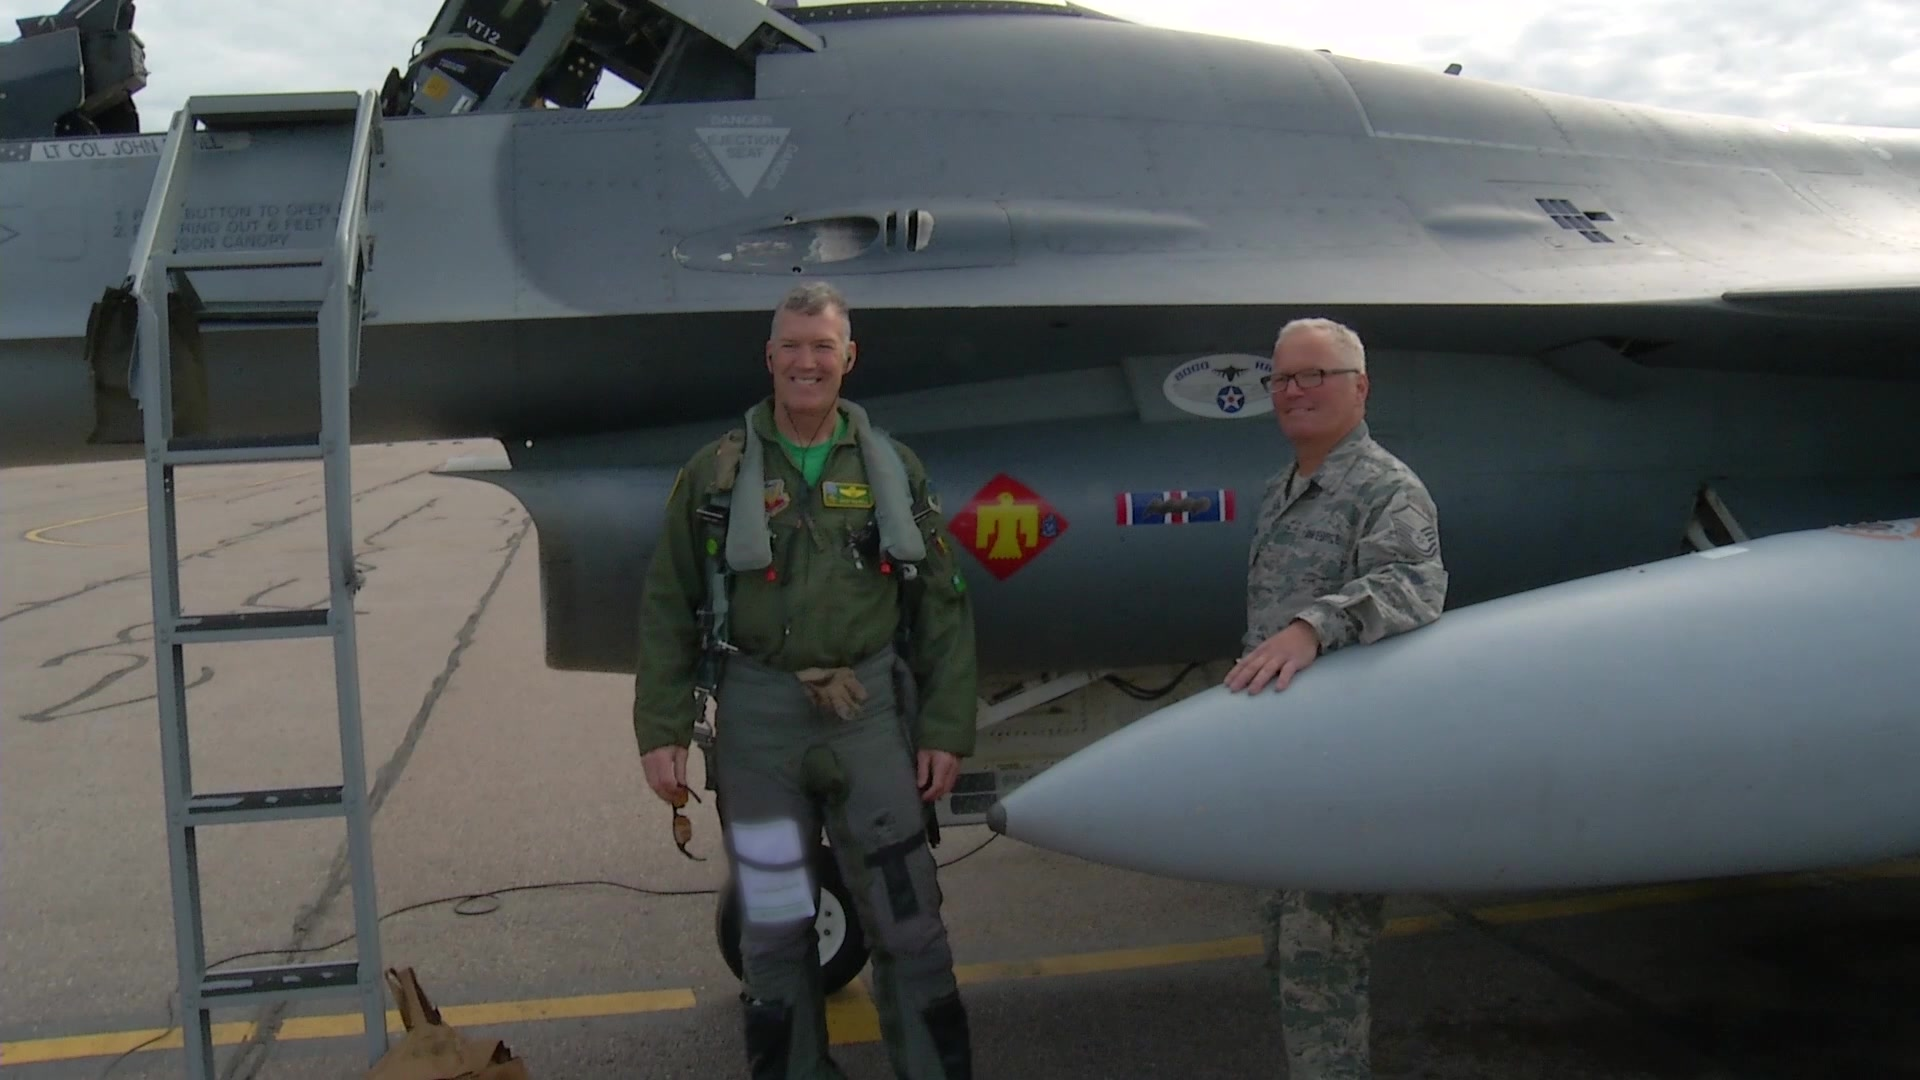 A Vermont Air National Guard F-16, which has over 8000 flight hours on it, is flown by the 158th FW for the last time by Lt. Col John Rahill. The Aircraft is being divested to the Atlantic City Air National Guard unit in New Jersey.